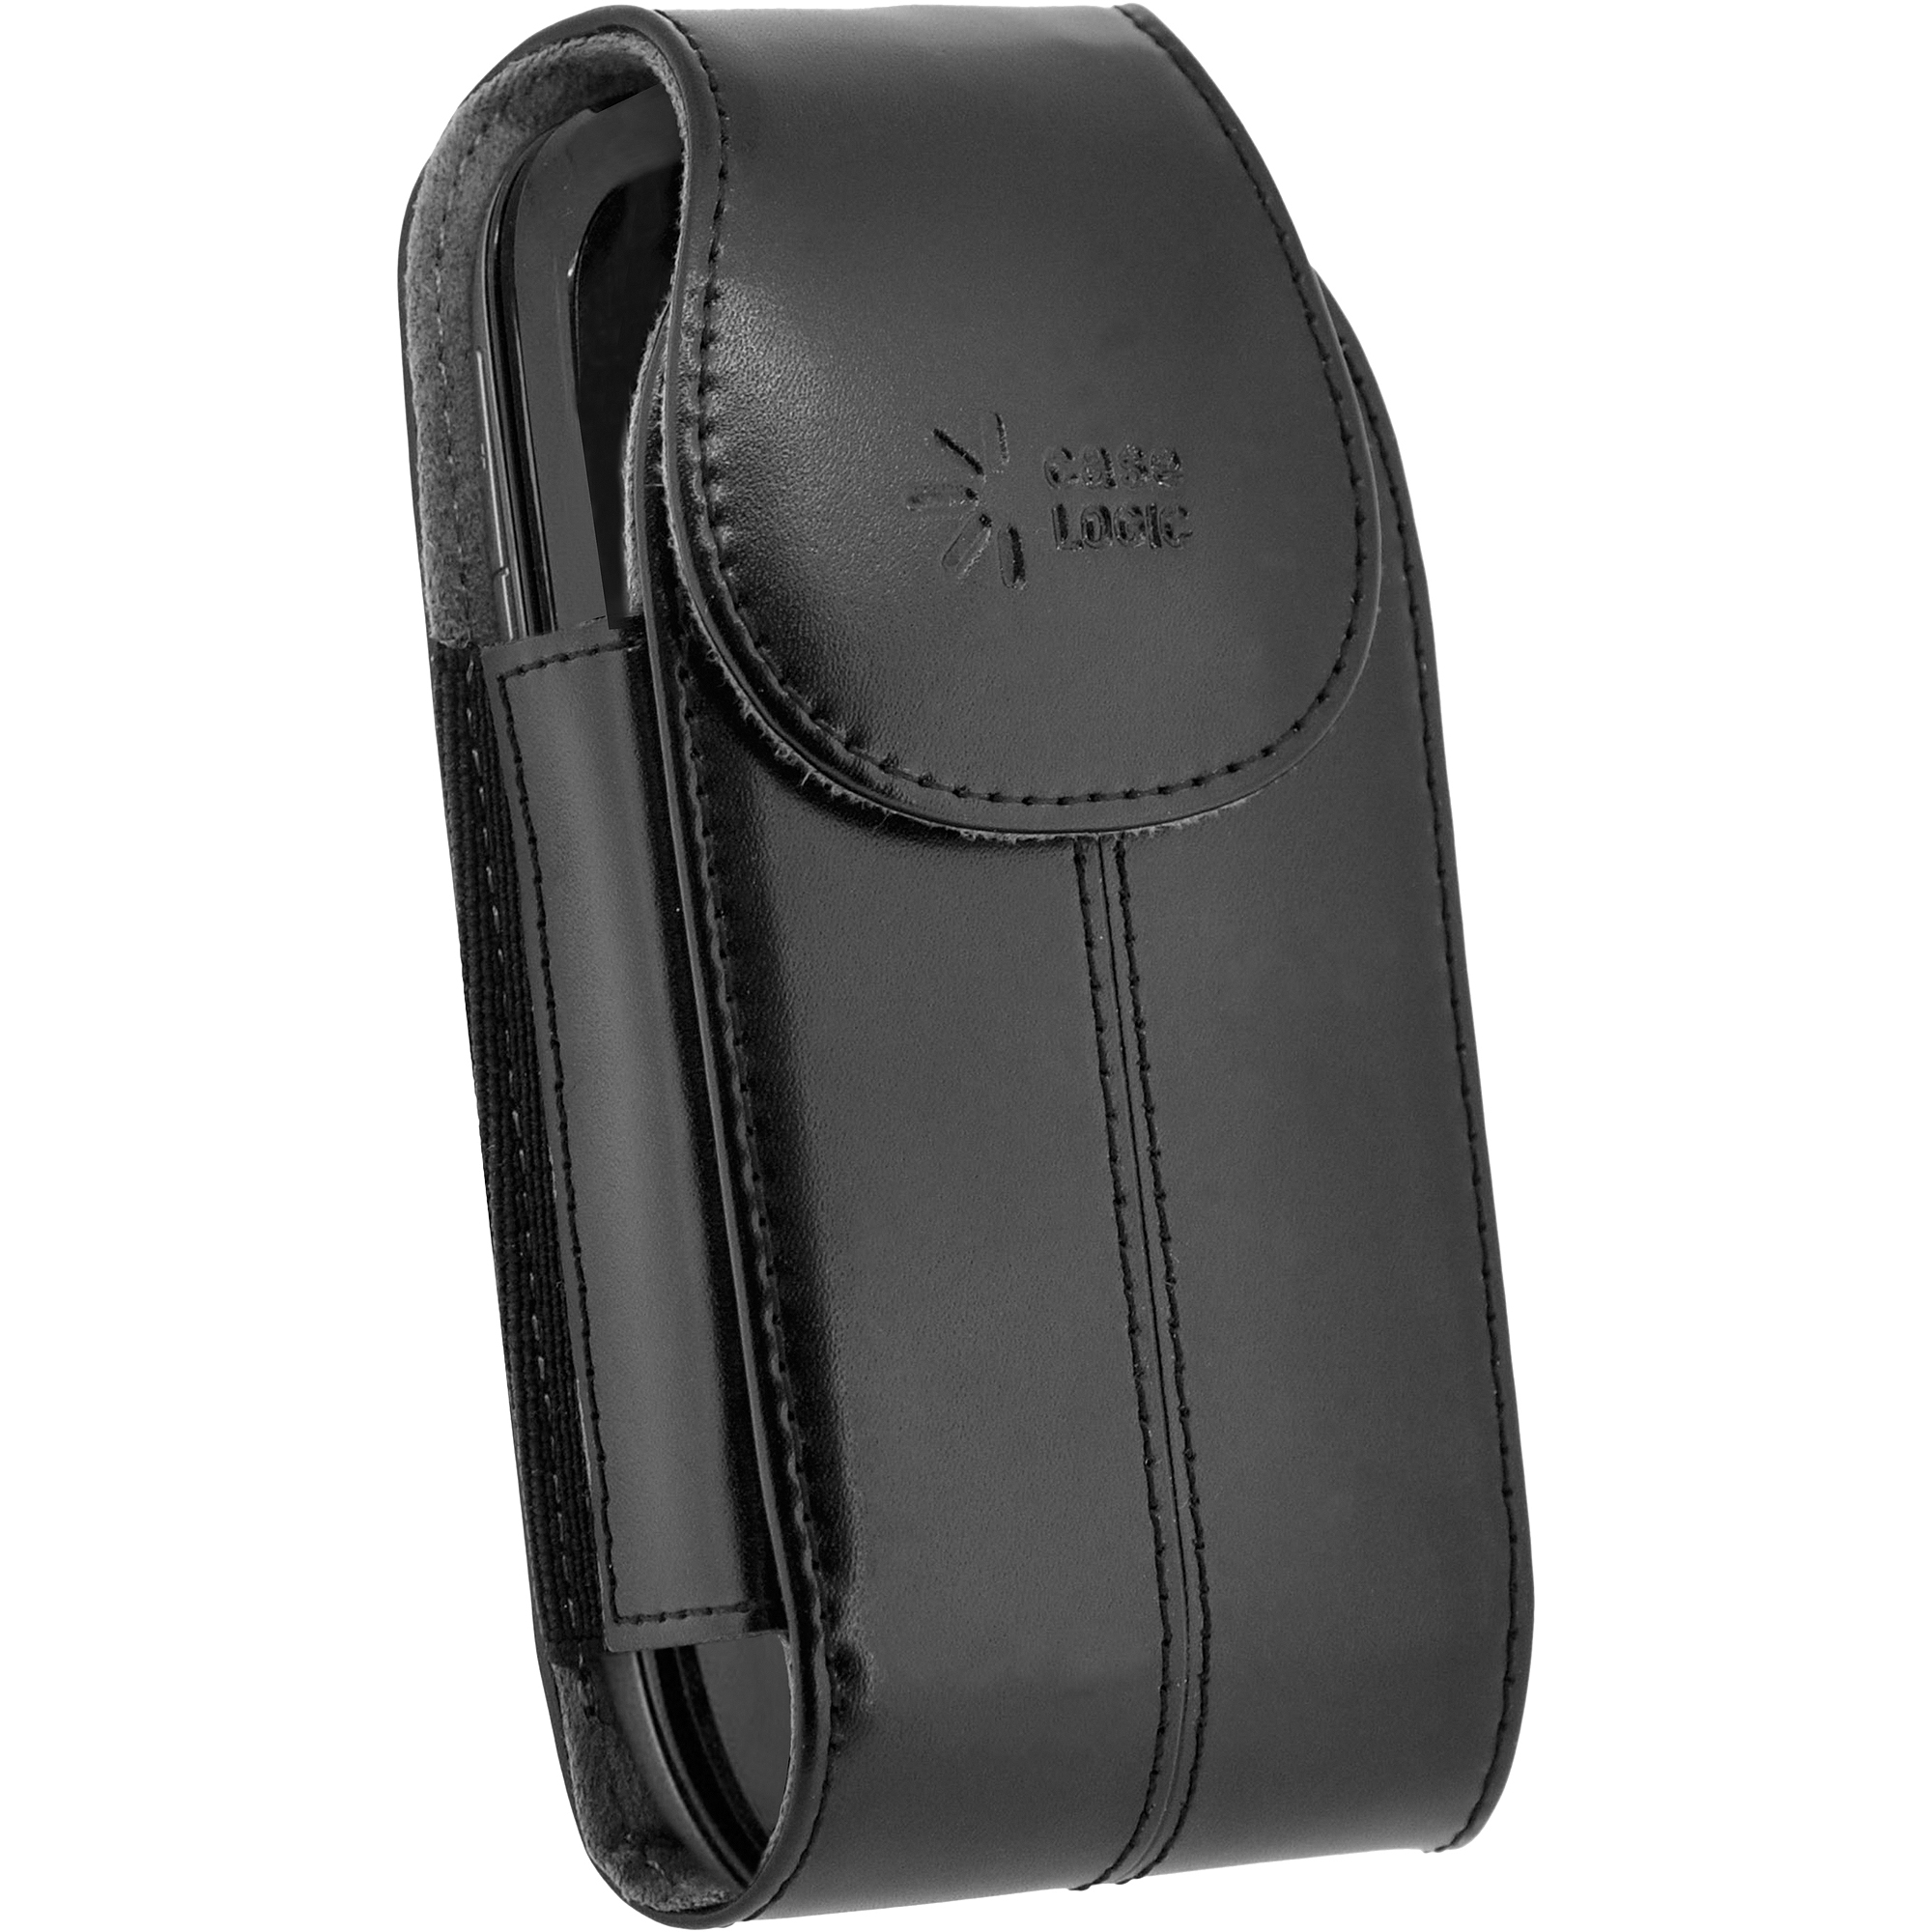 Case Logic Genuine Leather Vertical Smartphone Pouch